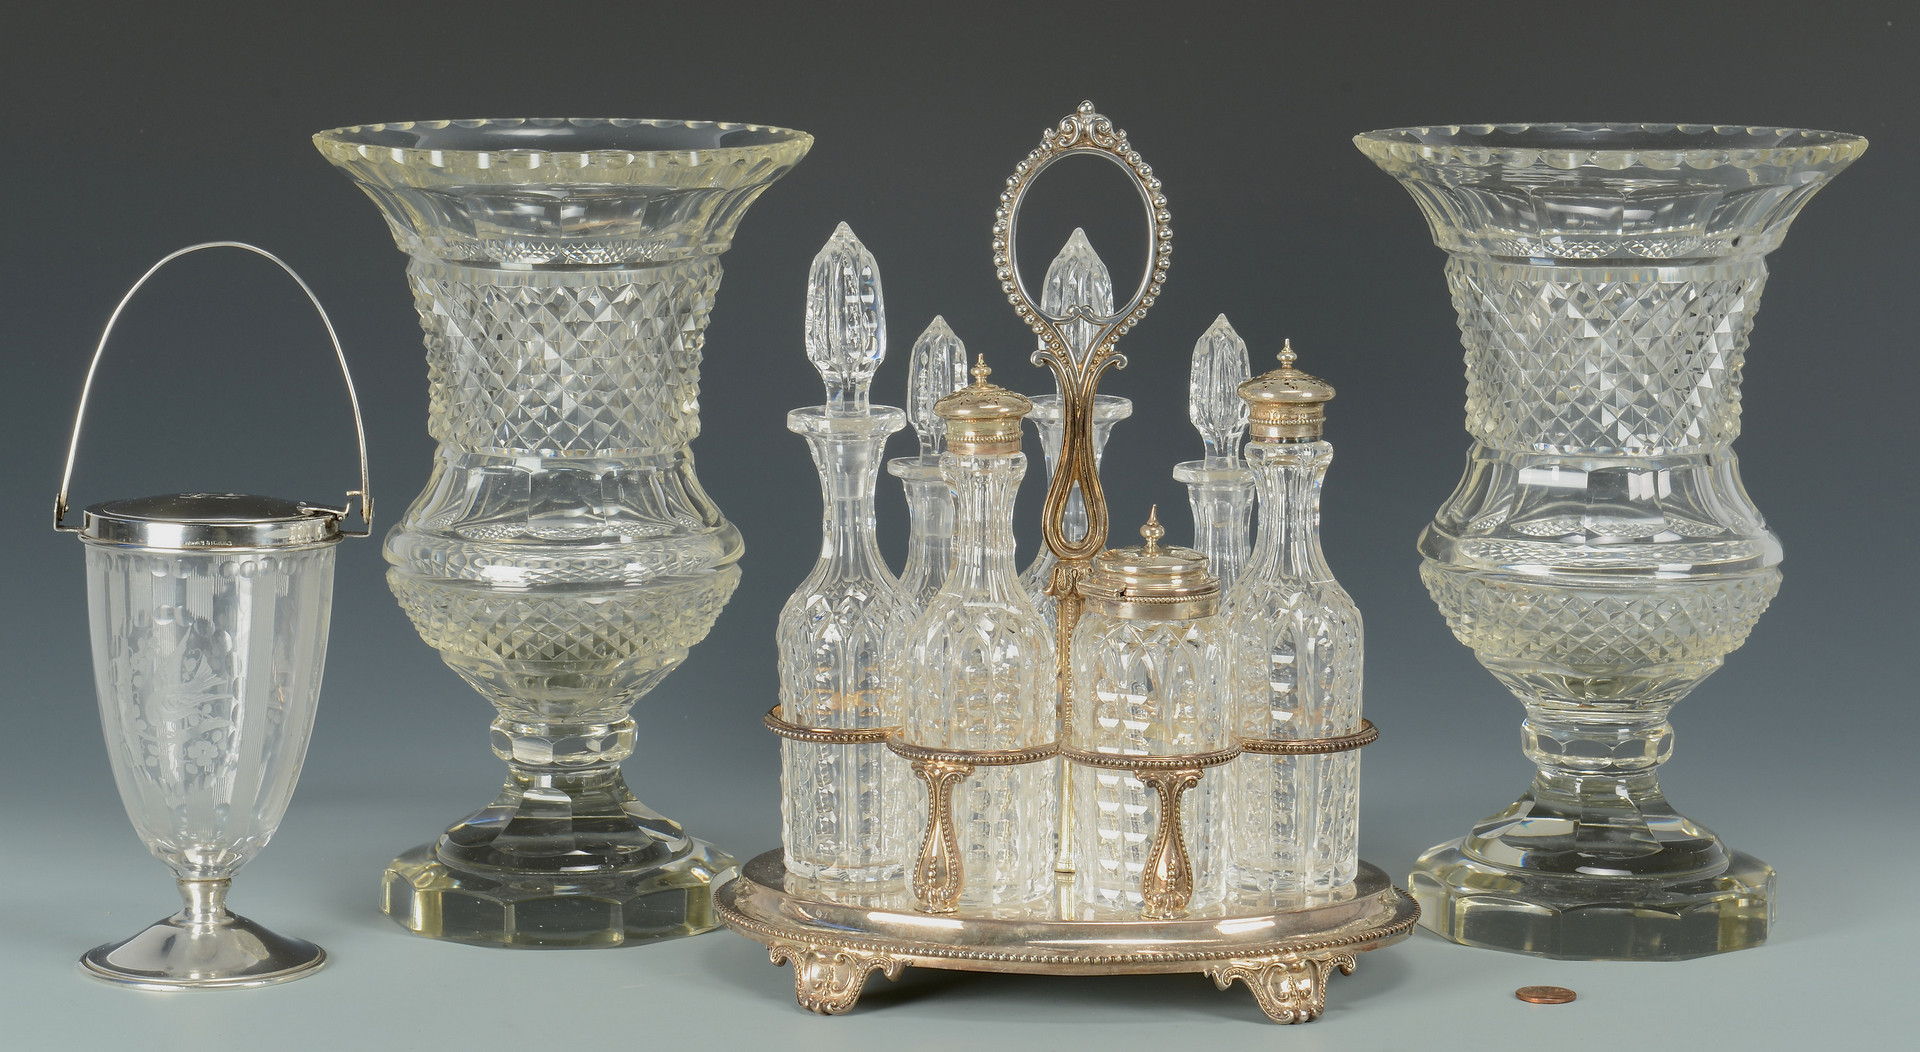 Lot 326: 4 Silver & Glass Table Items